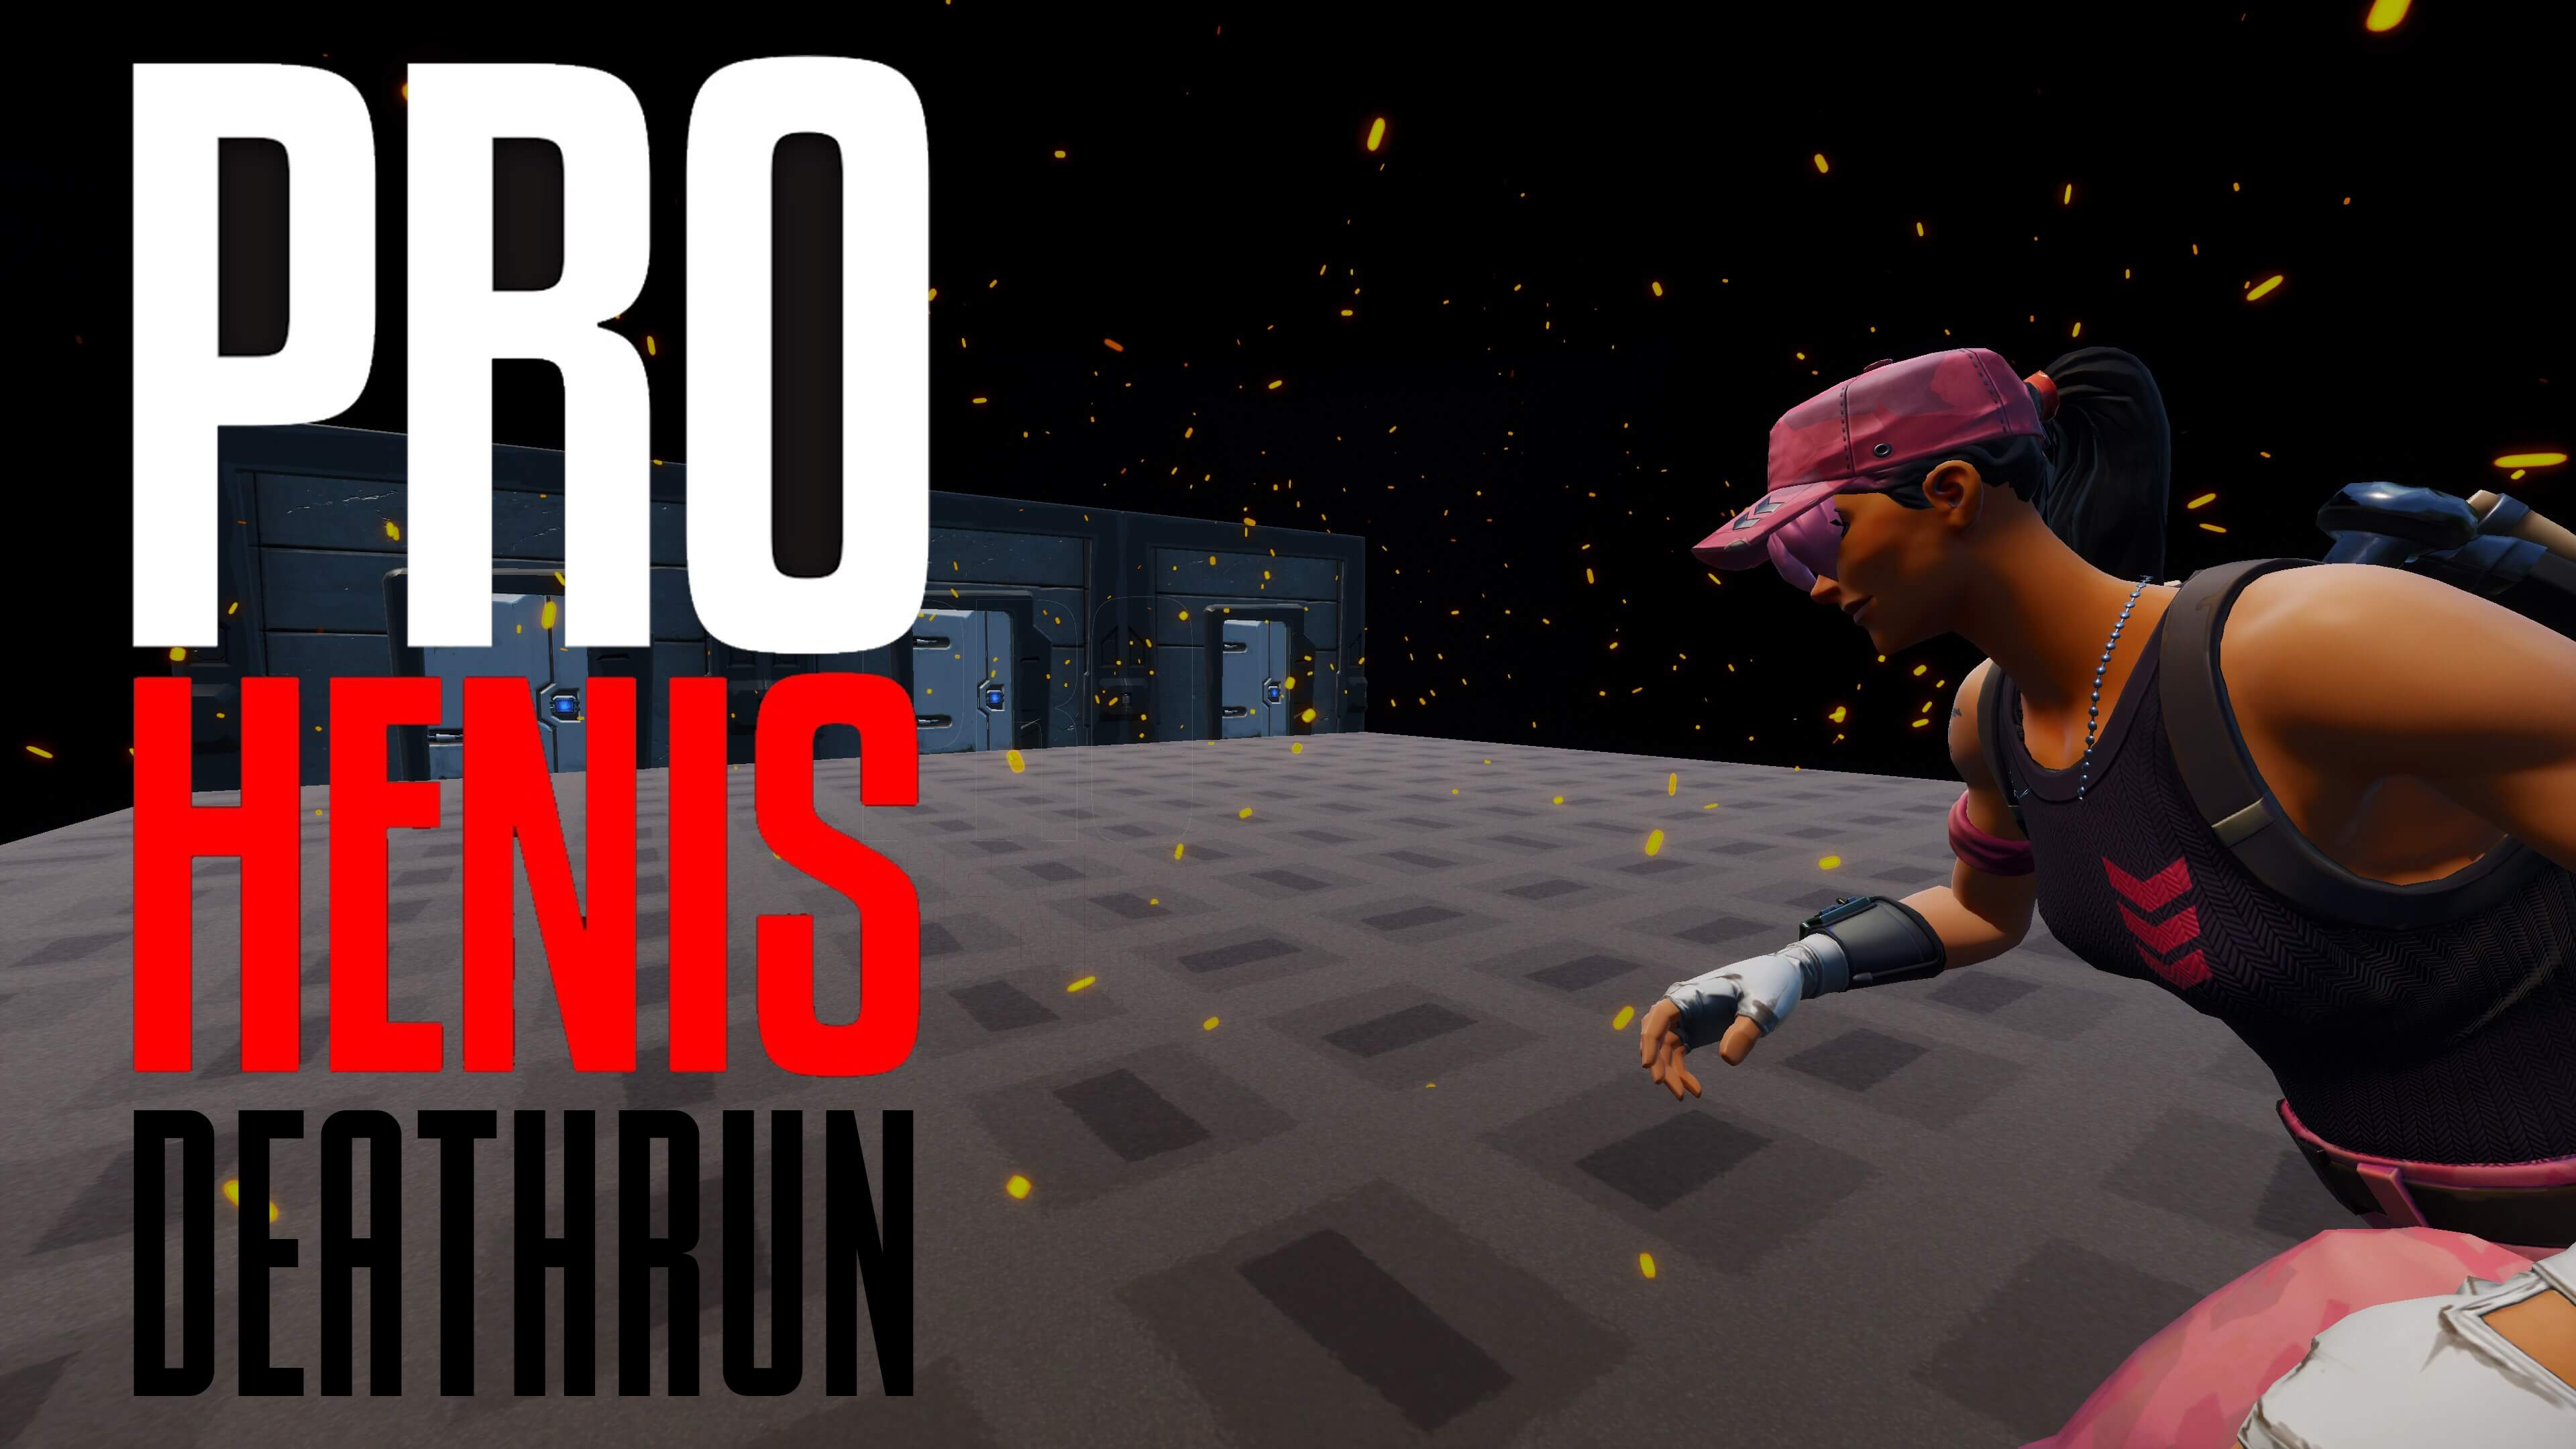 PROHENIS | EVERYTHING DEATHRUN | MEDIUM